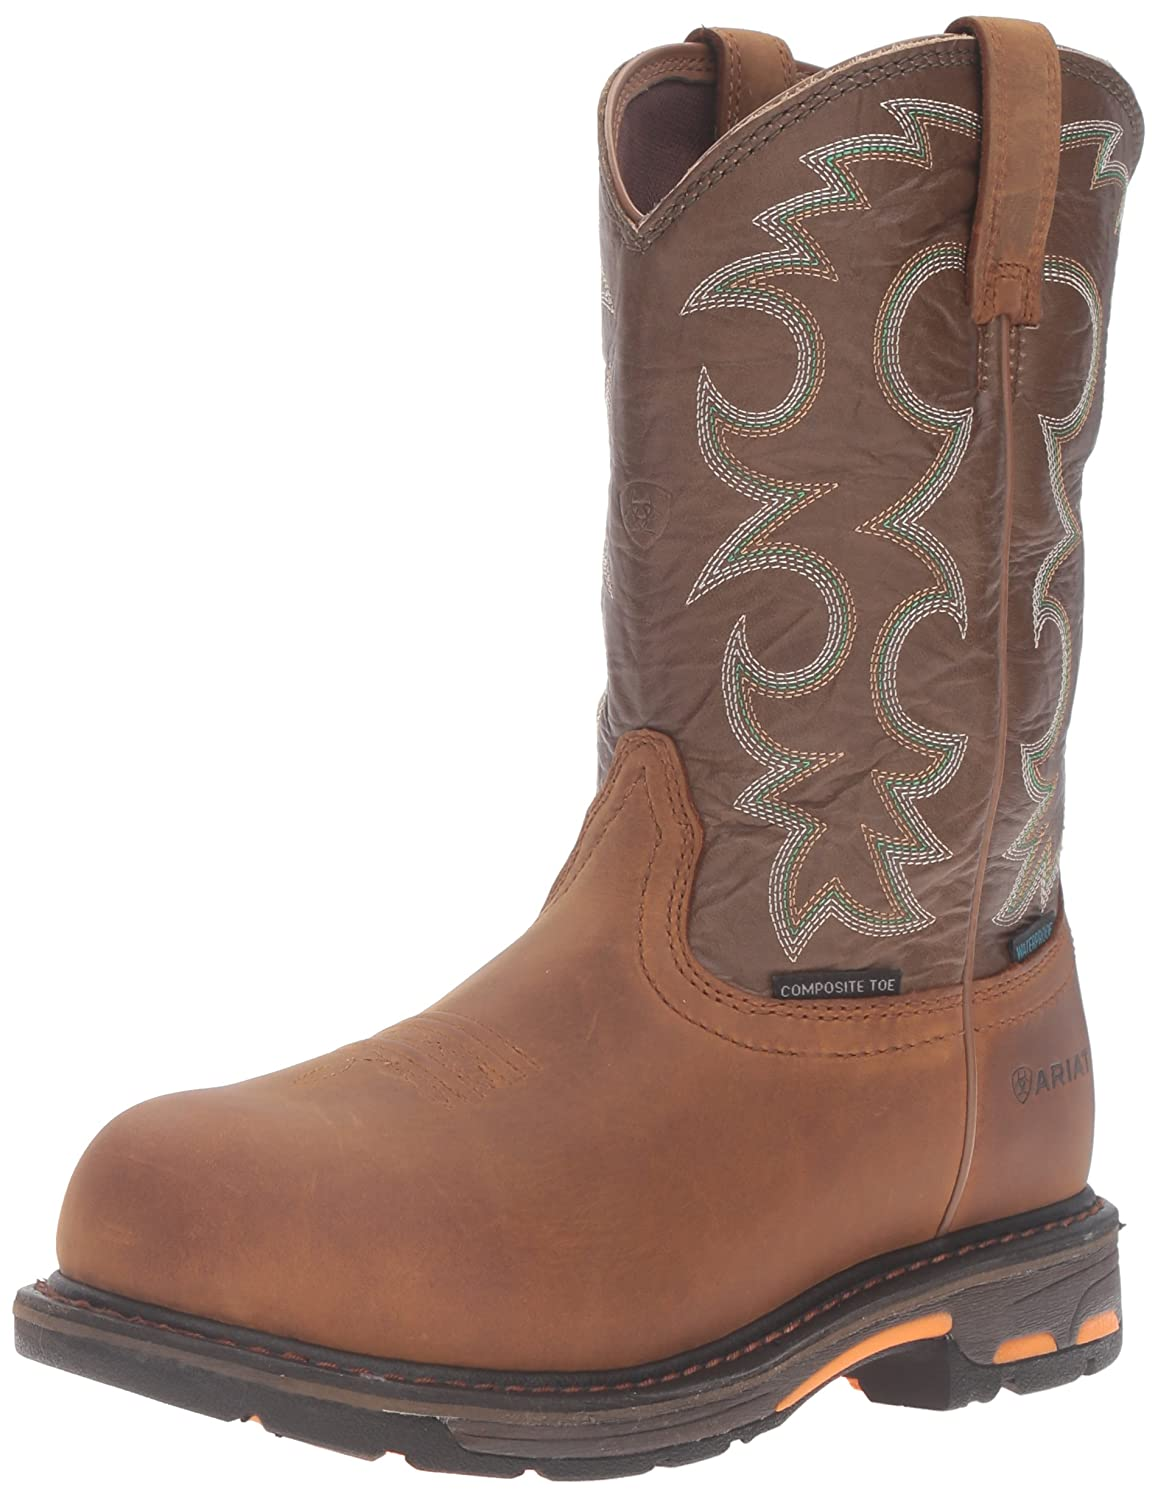 Ariat Women's Workhog H2O Composite Toe Work Boot B01BPW8XFU 8 W US|Aged Bark/Army Green